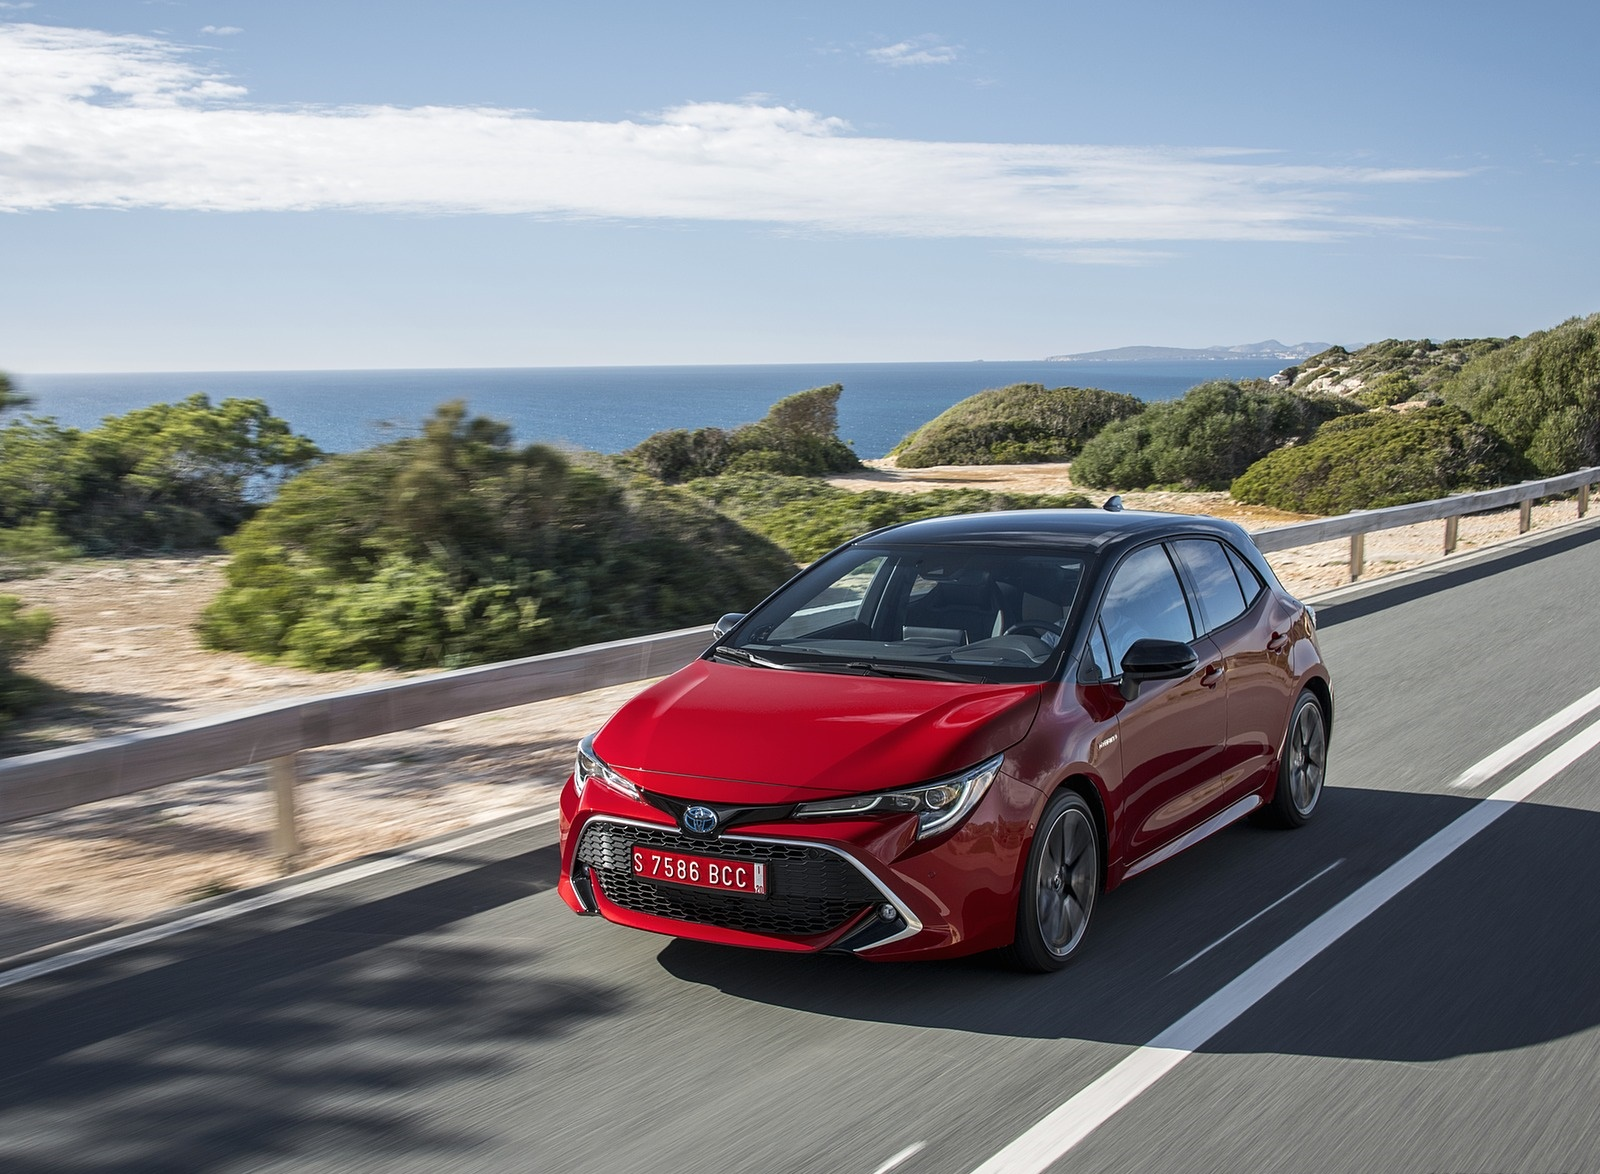 2019 Toyota Corolla Hatchback Hybrid 2.0L Red bitone (EU-Spec) Front Three-Quarter Wallpapers (13)